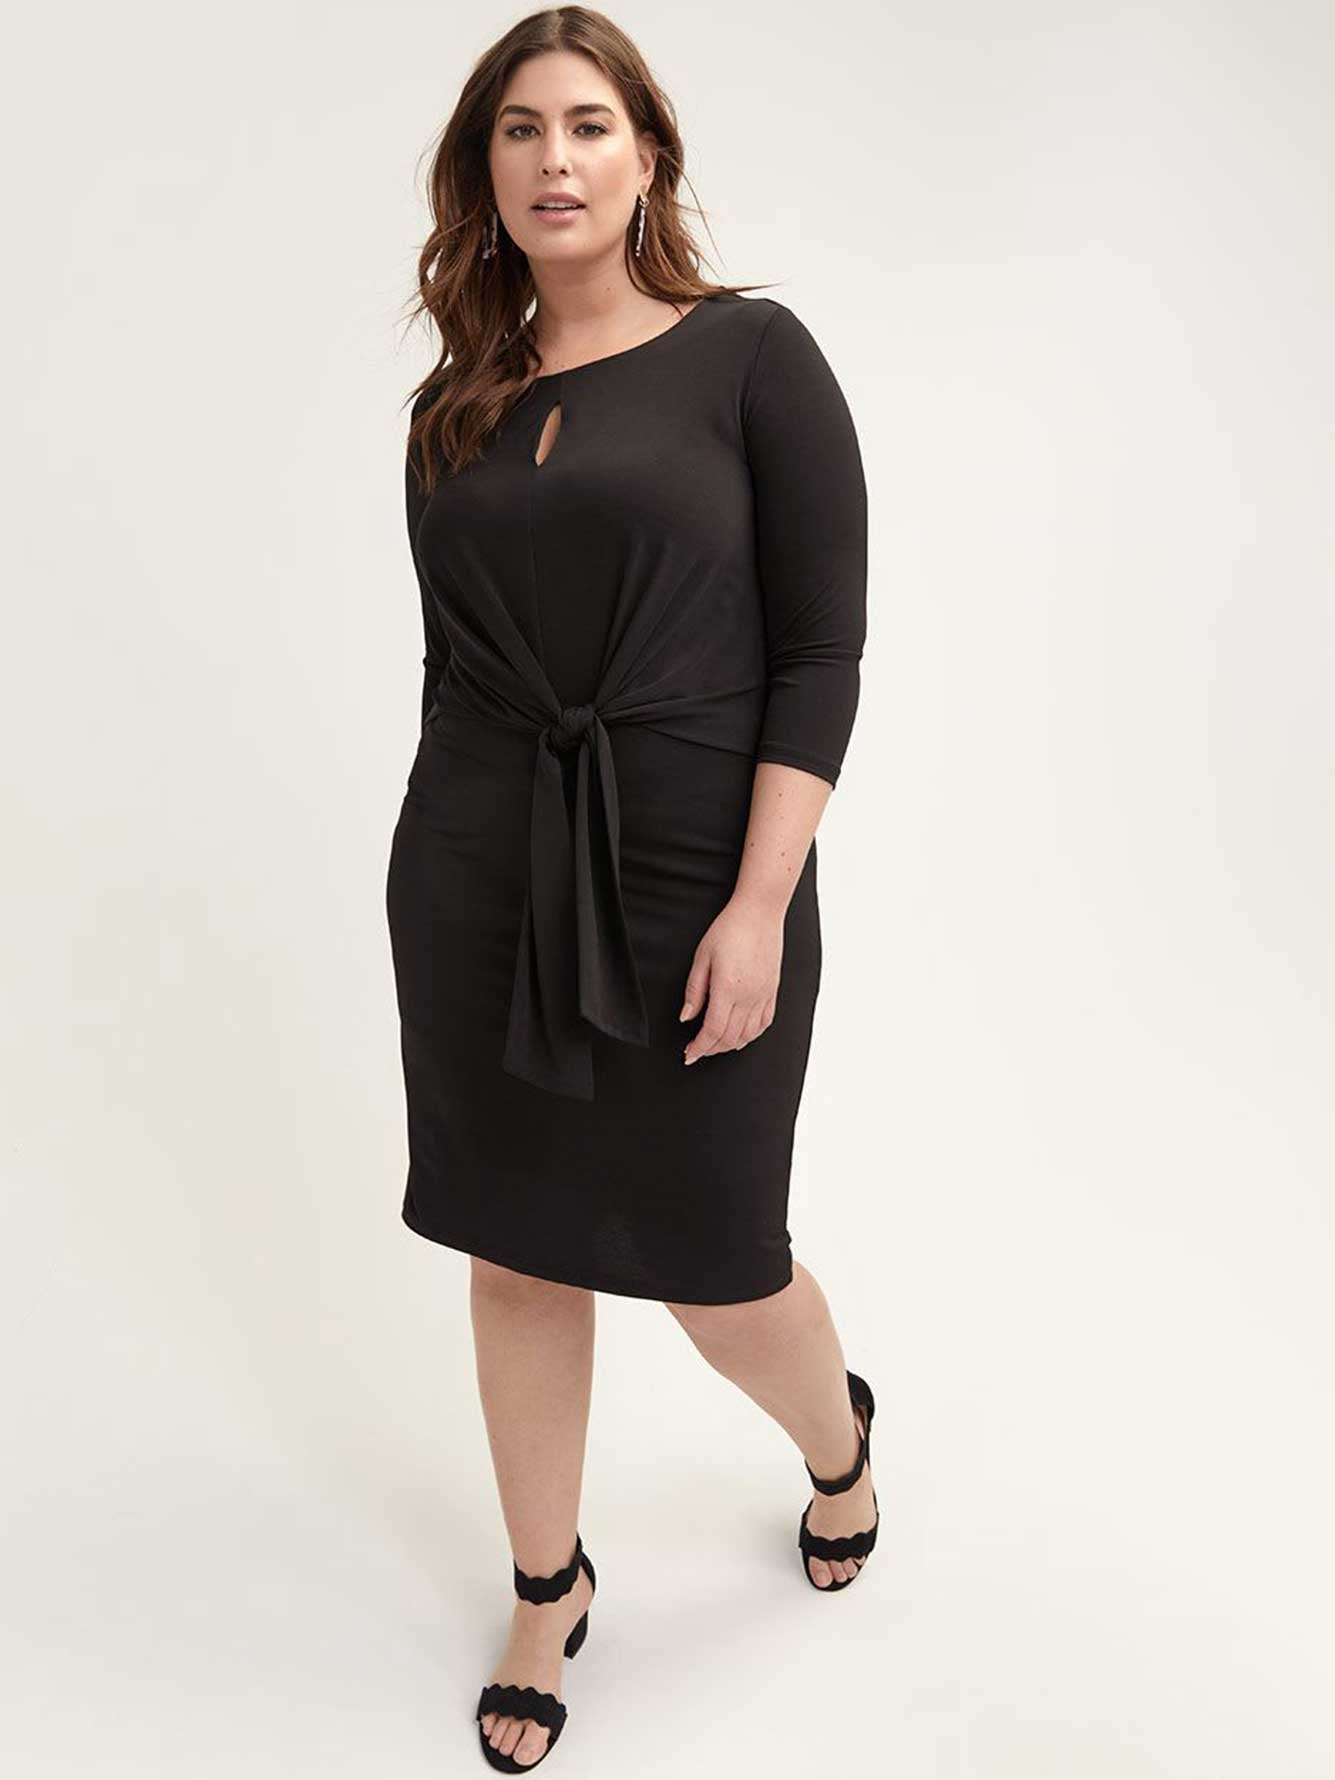 Black Fitted Jersey Dress with Front Knot